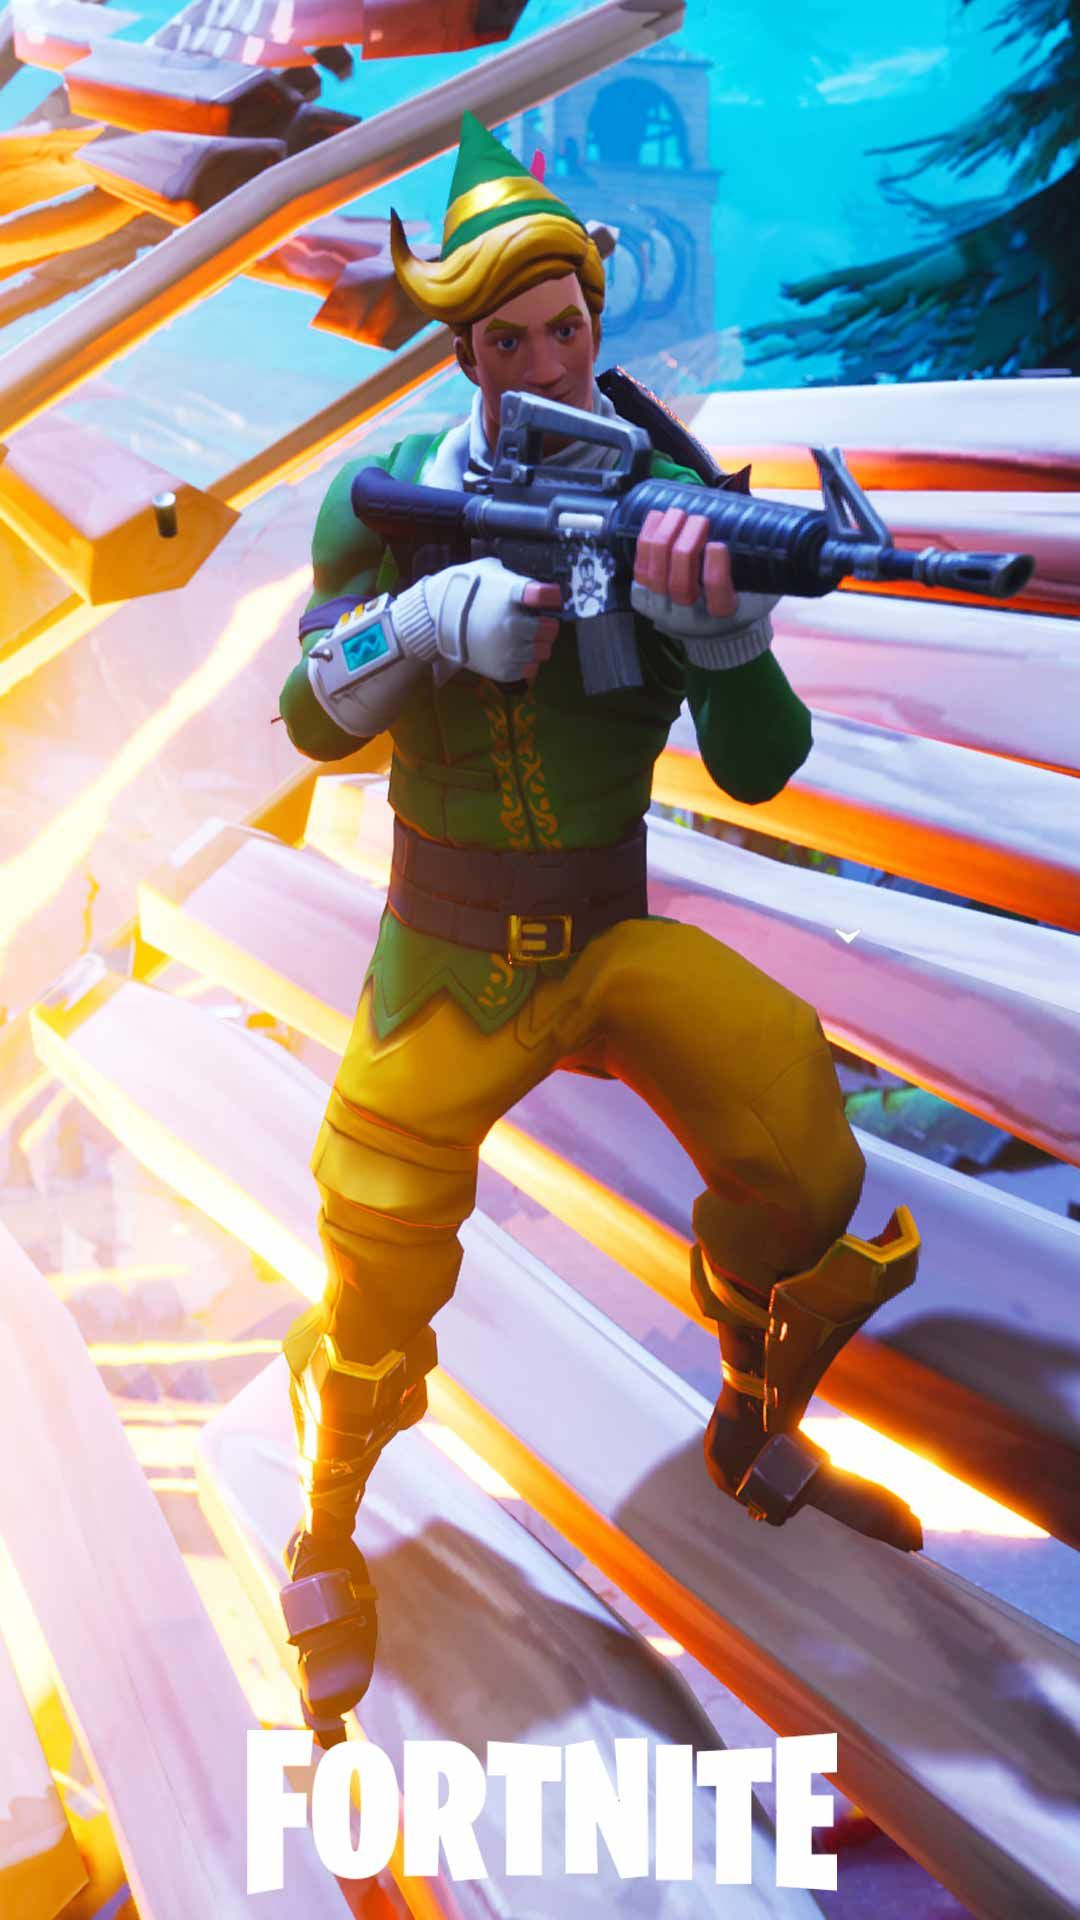 30 Fortnite Wallpaper Hd Phone Backgrounds For Iphone Android Lock Screen Characters Skins Art Hd Phone Backgrounds Phone Backgrounds Gaming Wallpapers Hd